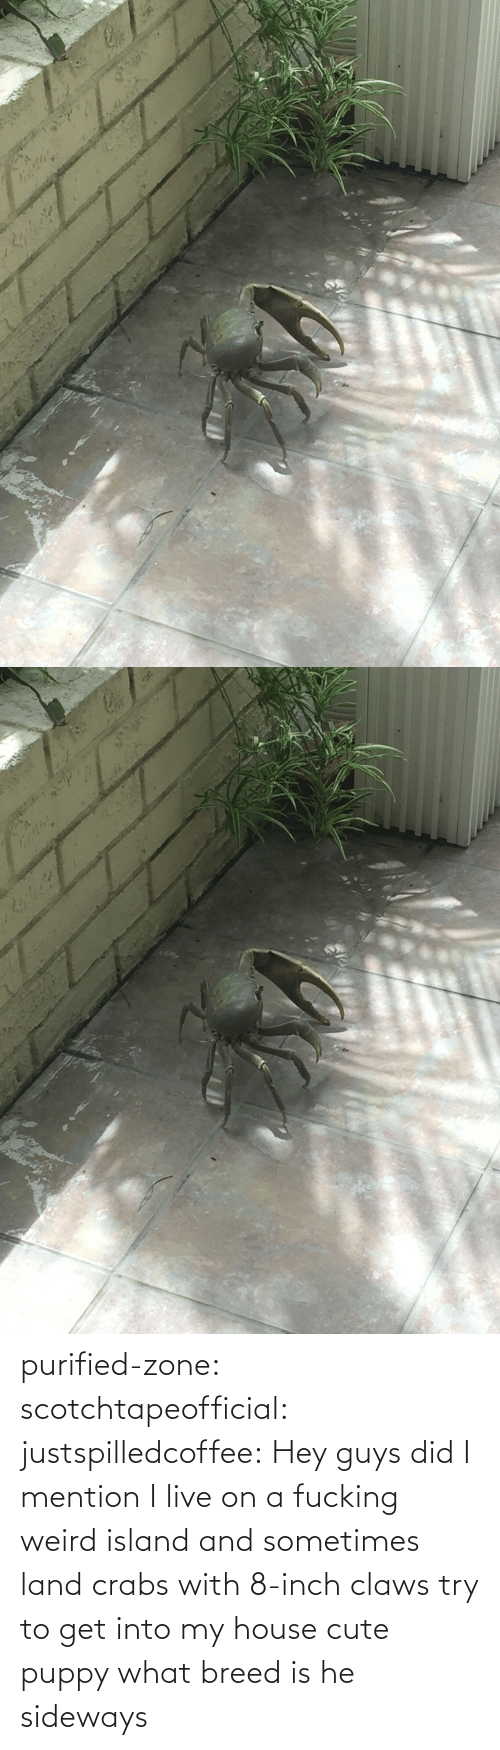 island: purified-zone: scotchtapeofficial:  justspilledcoffee:  Hey guys did I mention I live on a fucking weird island and sometimes land crabs with 8-inch claws try to get into my house  cute puppy what breed is he  sideways